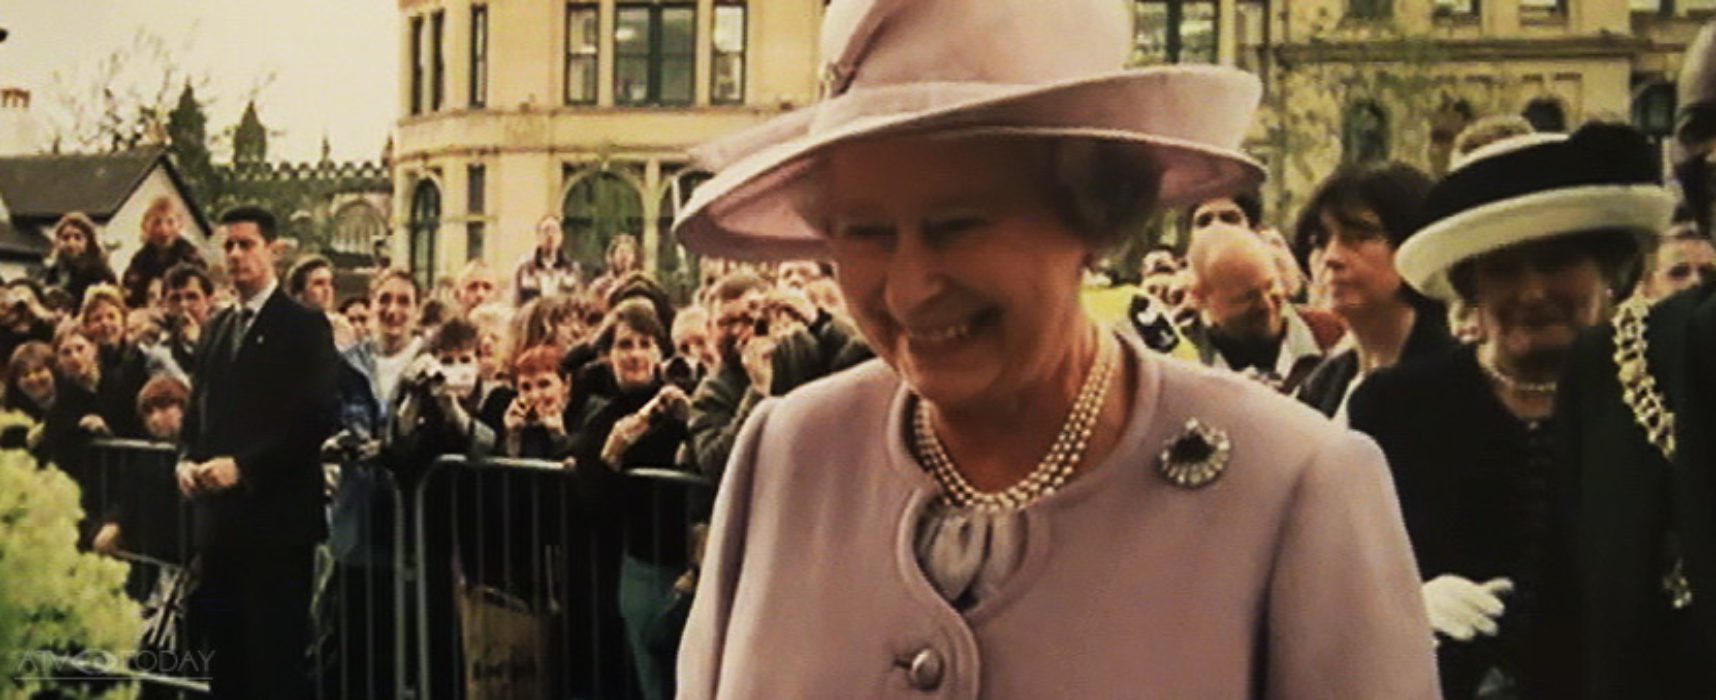 Betting with the Queen's Birthday